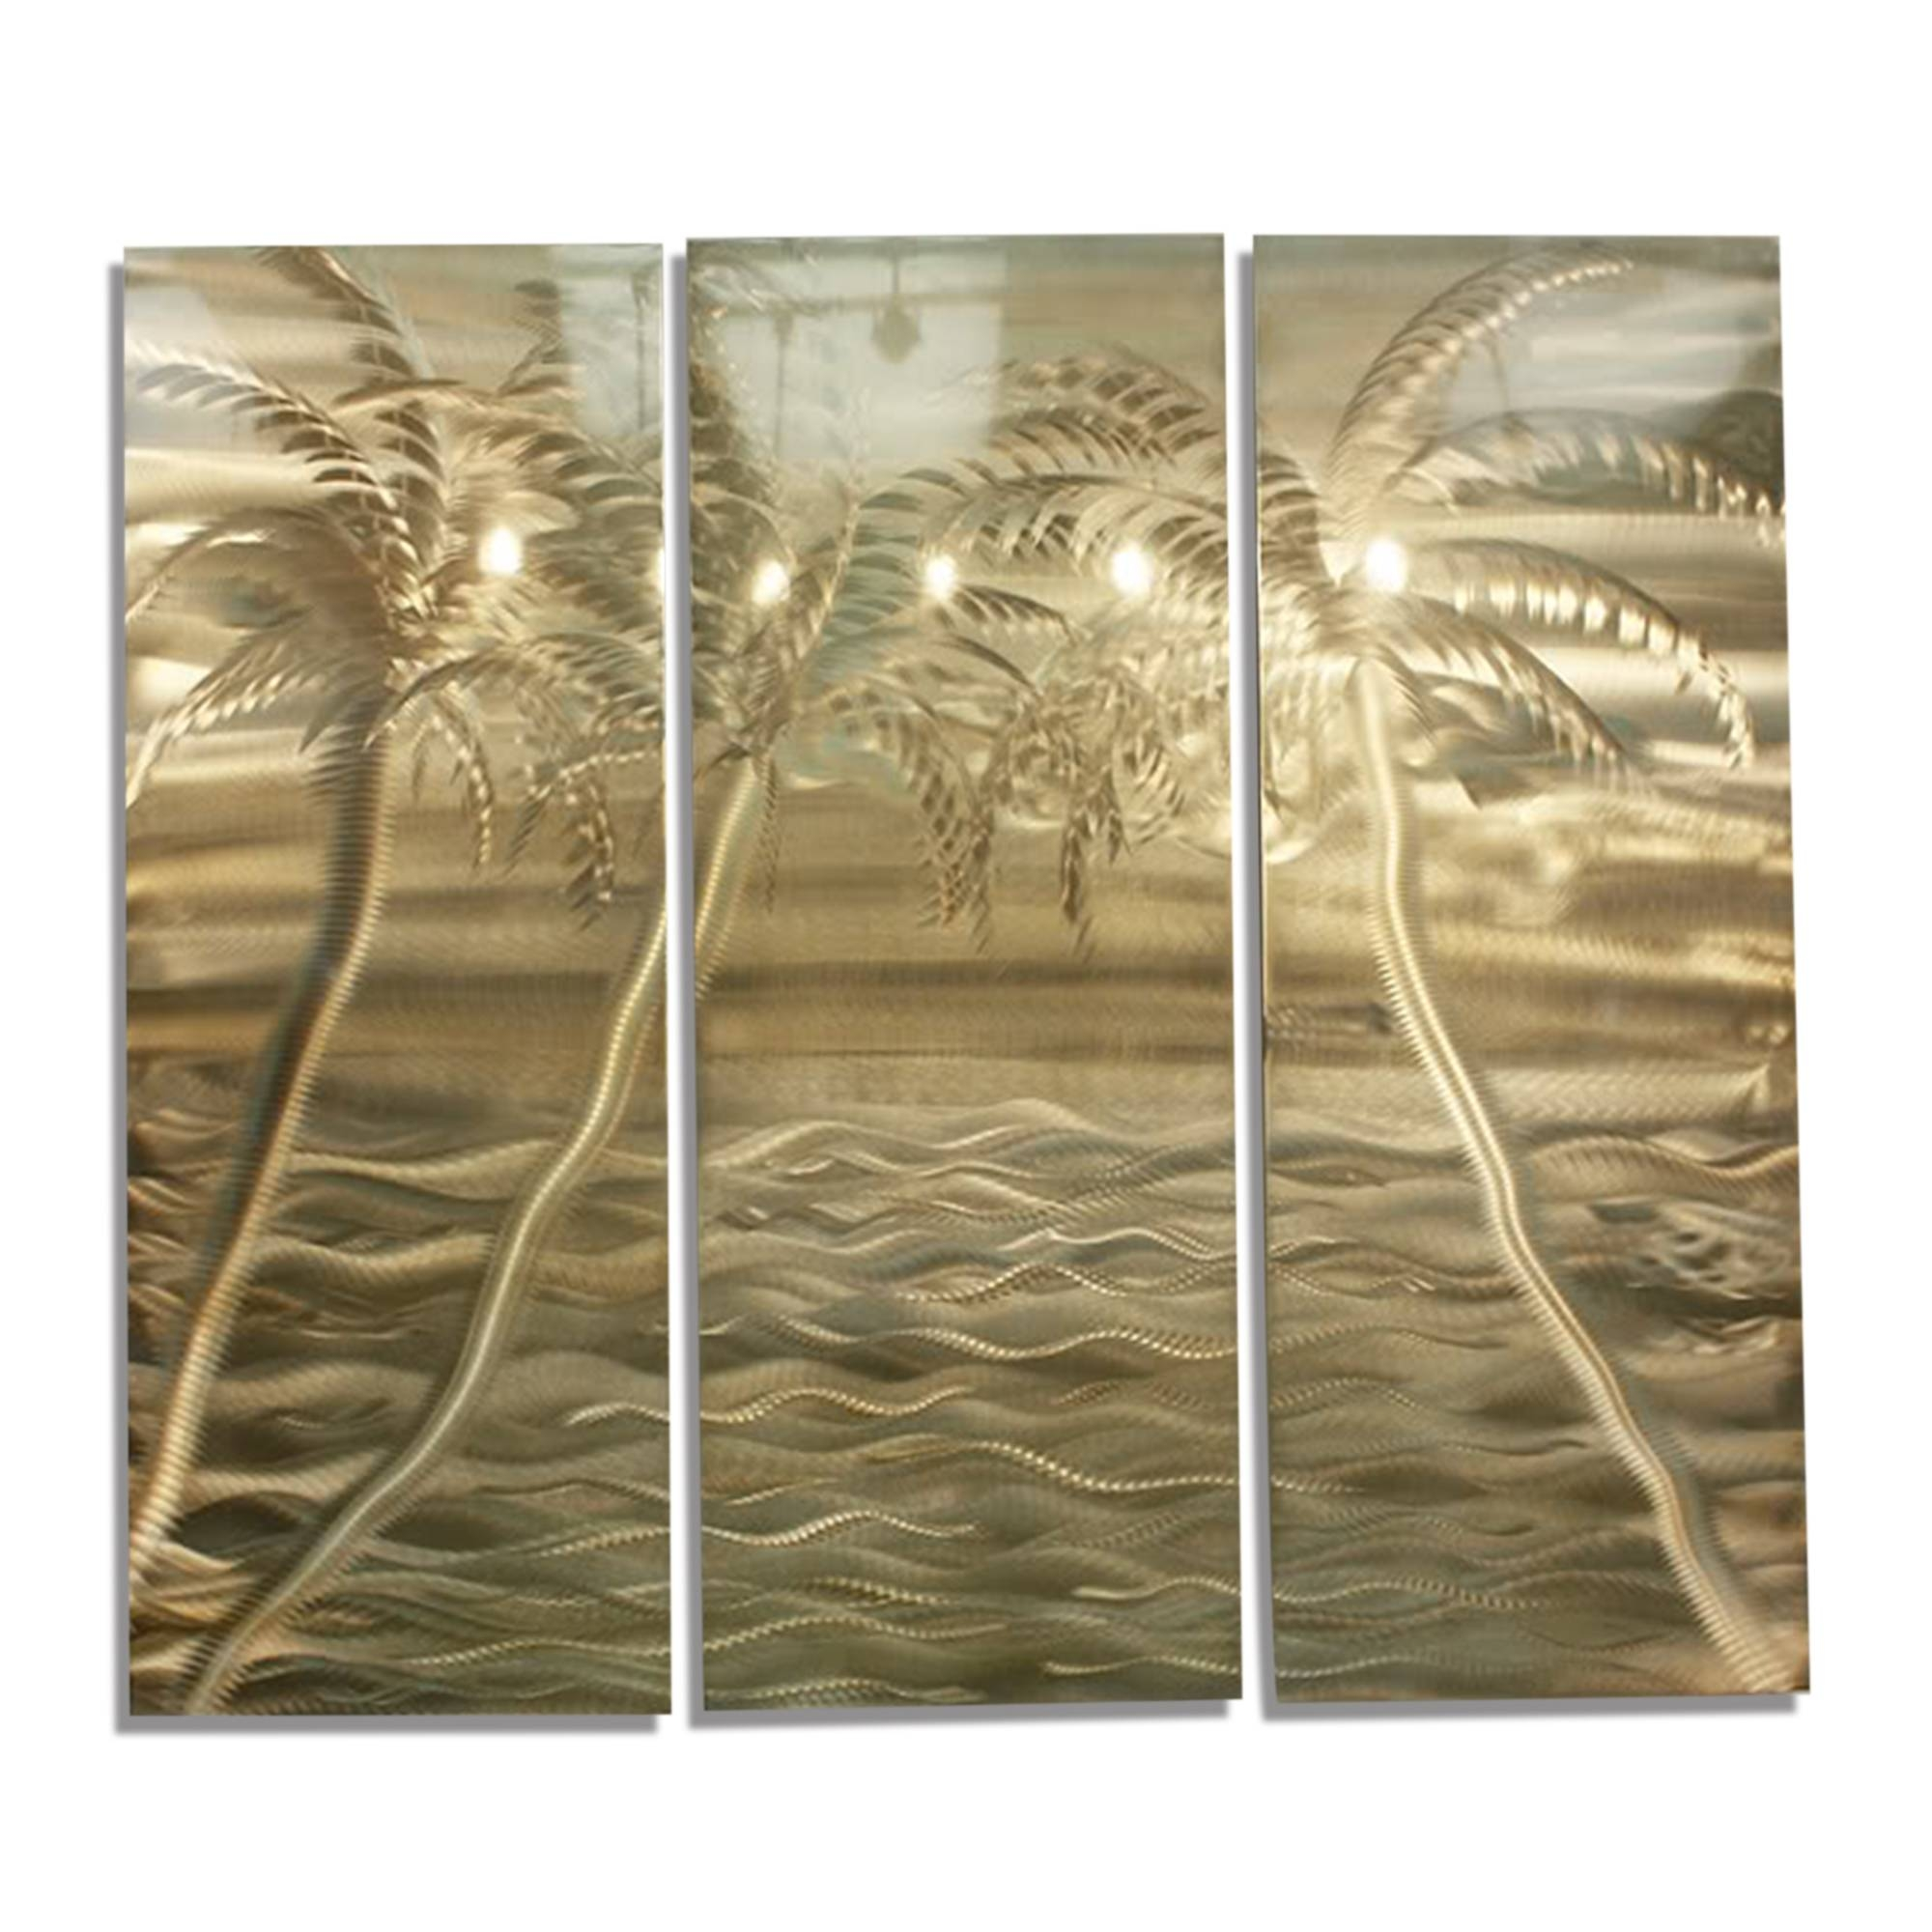 Metal Wall Art | Handmade Metal Art, Panel Art & Wall Sculptures Intended For Current Ireland Metal Wall Art (View 2 of 20)